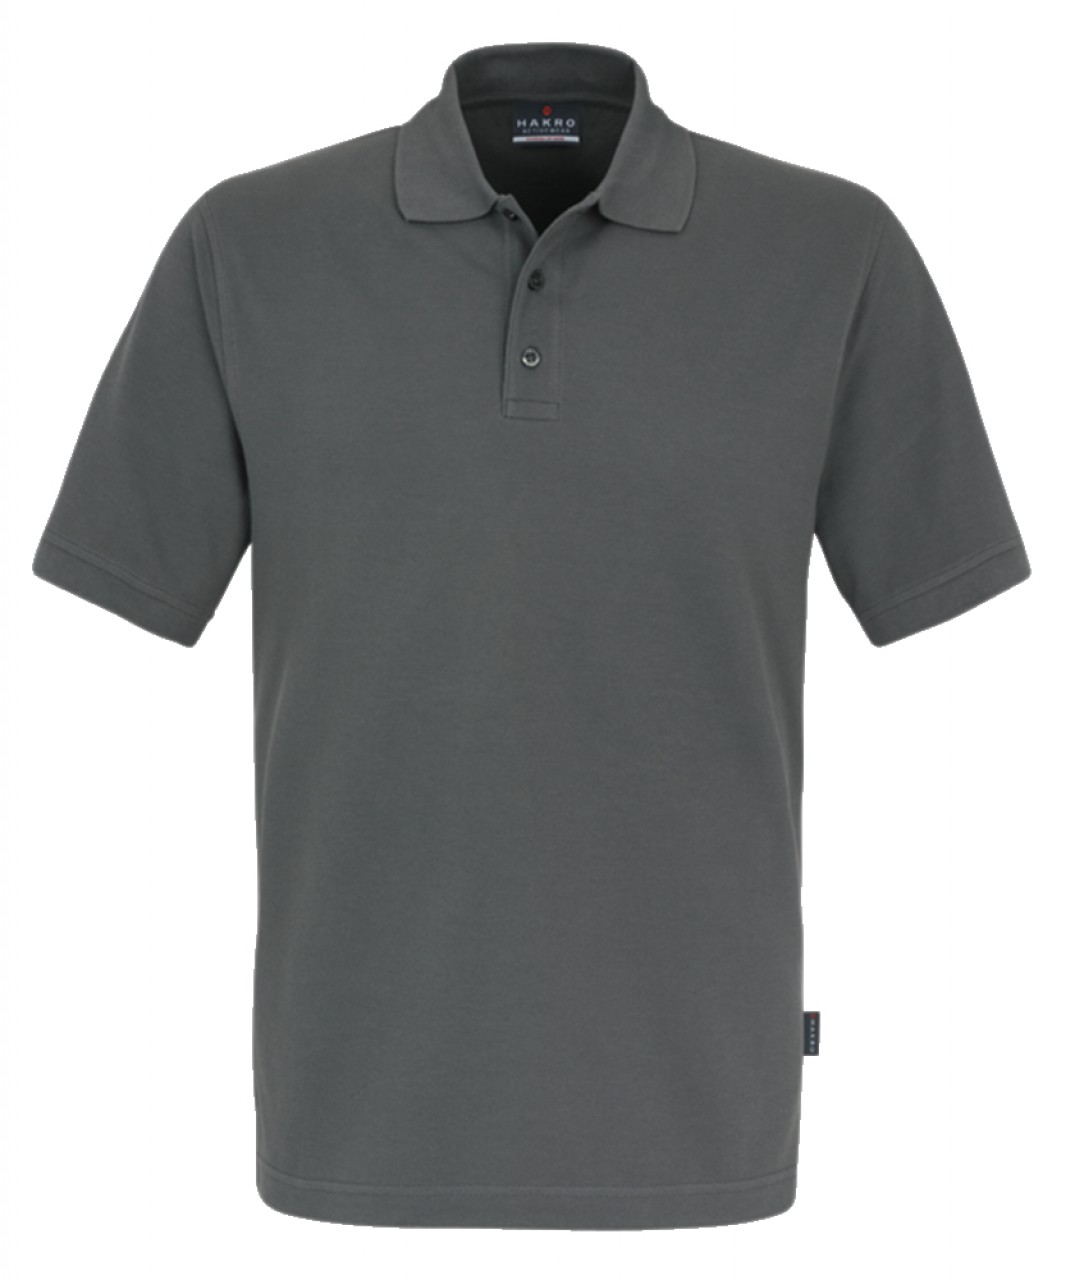 Herren Polo-Shirt Top graphit